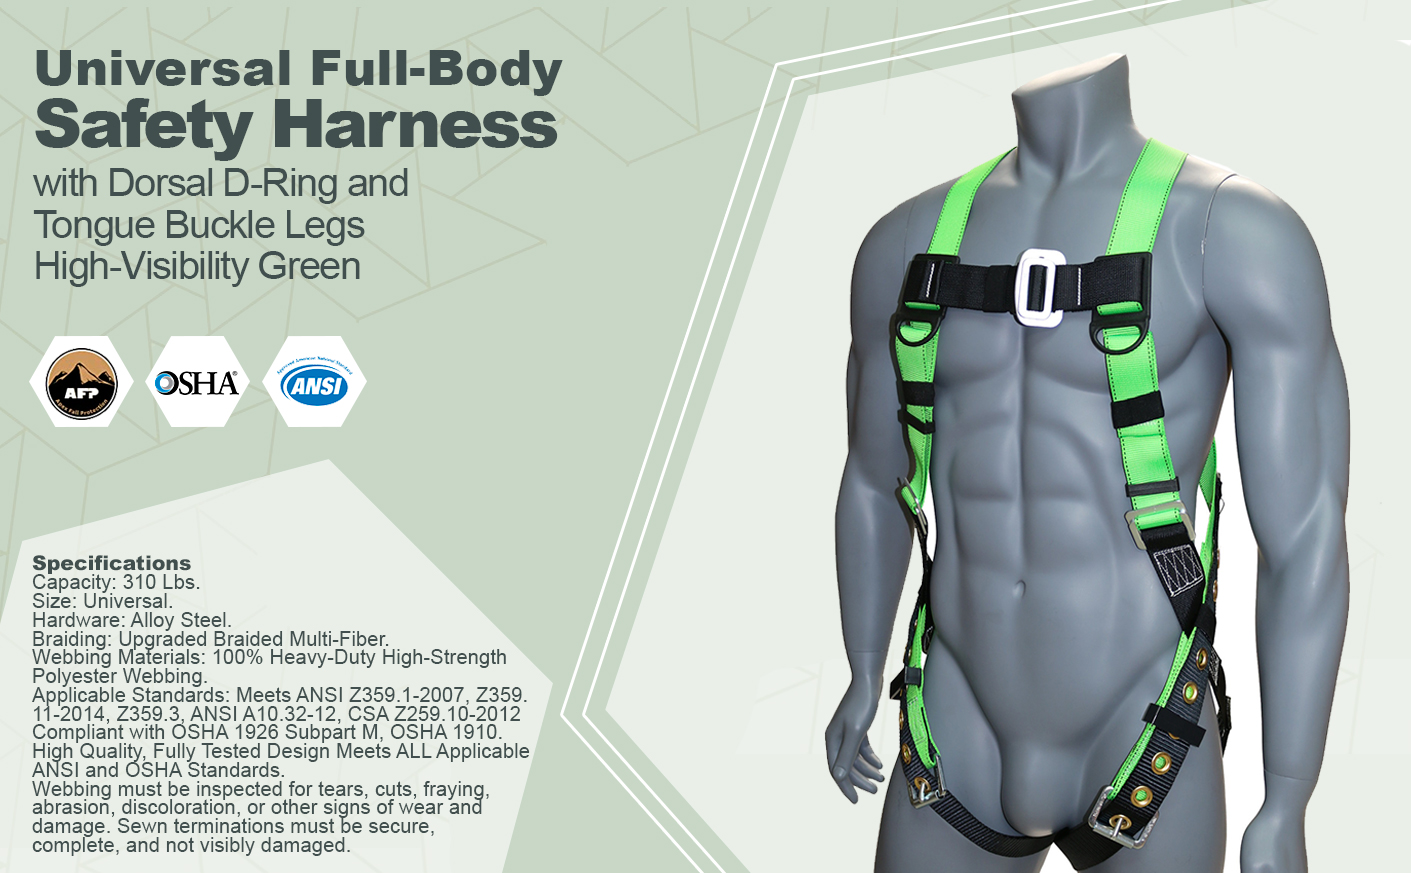 AFP Universal Full-Body Safety Harness with Dorsal D-Ring and Tongue Buckle Legs High-Visibility Green (OSHA/ANSI Compliant) Quick One Safety